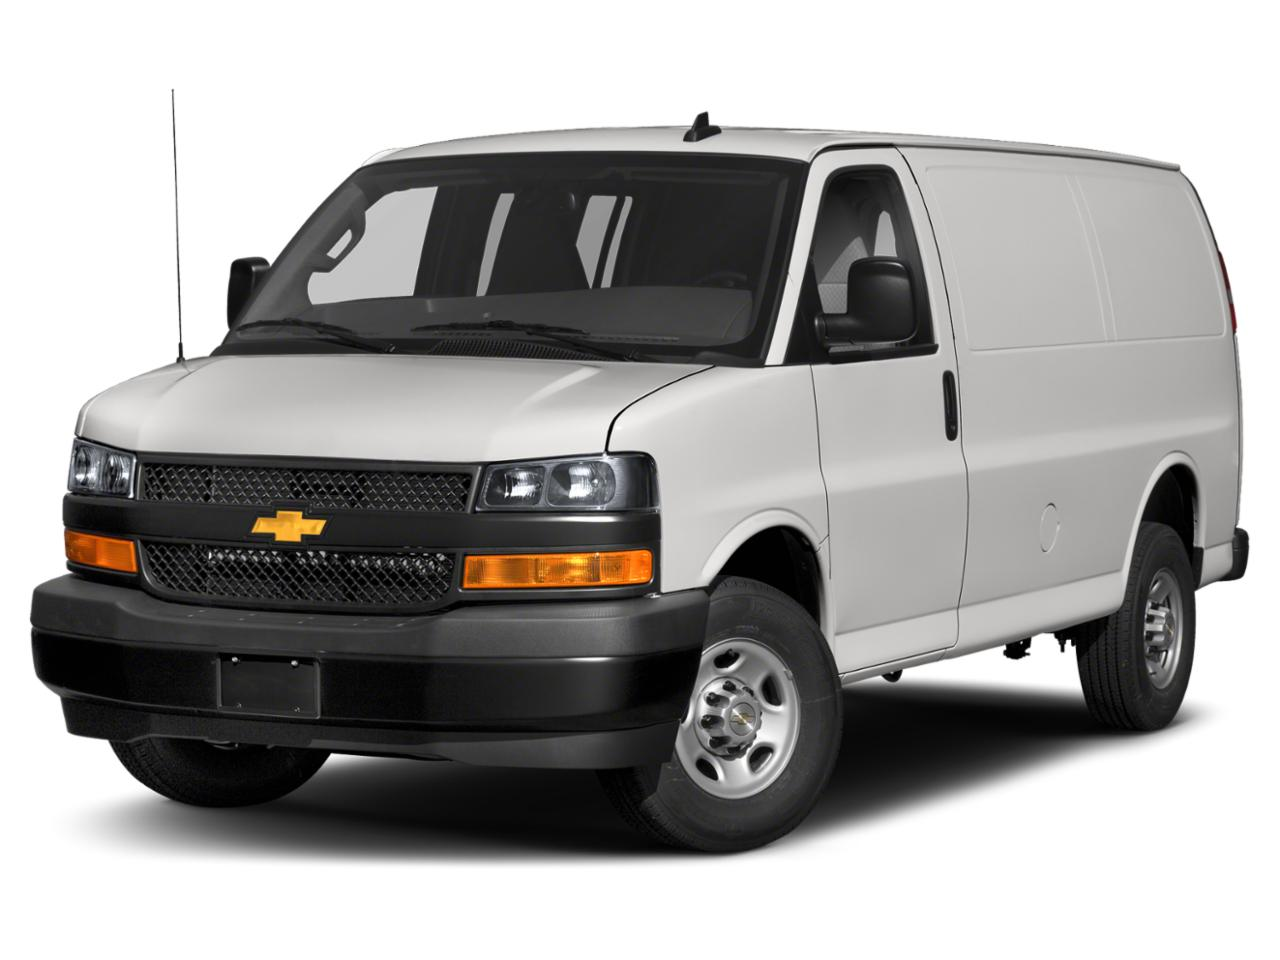 2020 Chevrolet Express Cargo Van Vehicle Photo in Ann Arbor, MI 48103